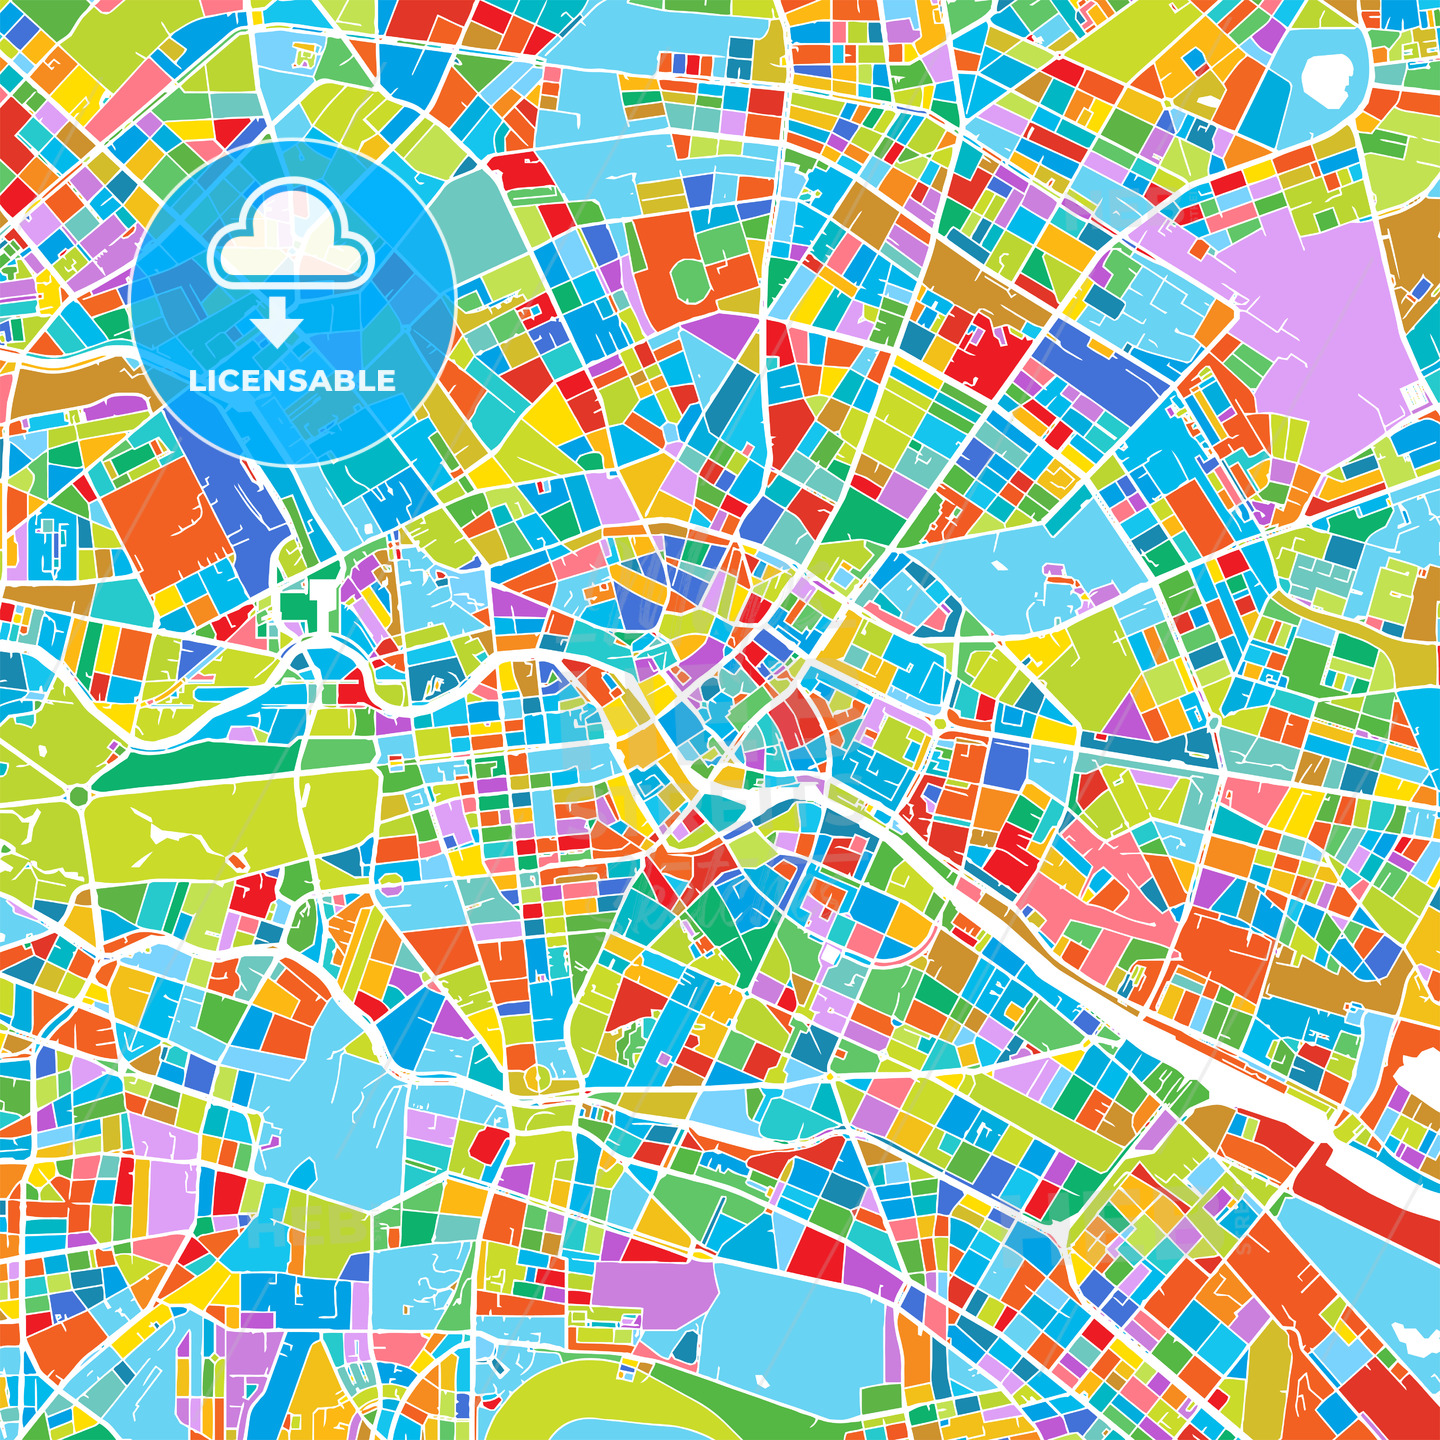 Berlin Colorful Vector Map - HEBSTREIT's Sketches